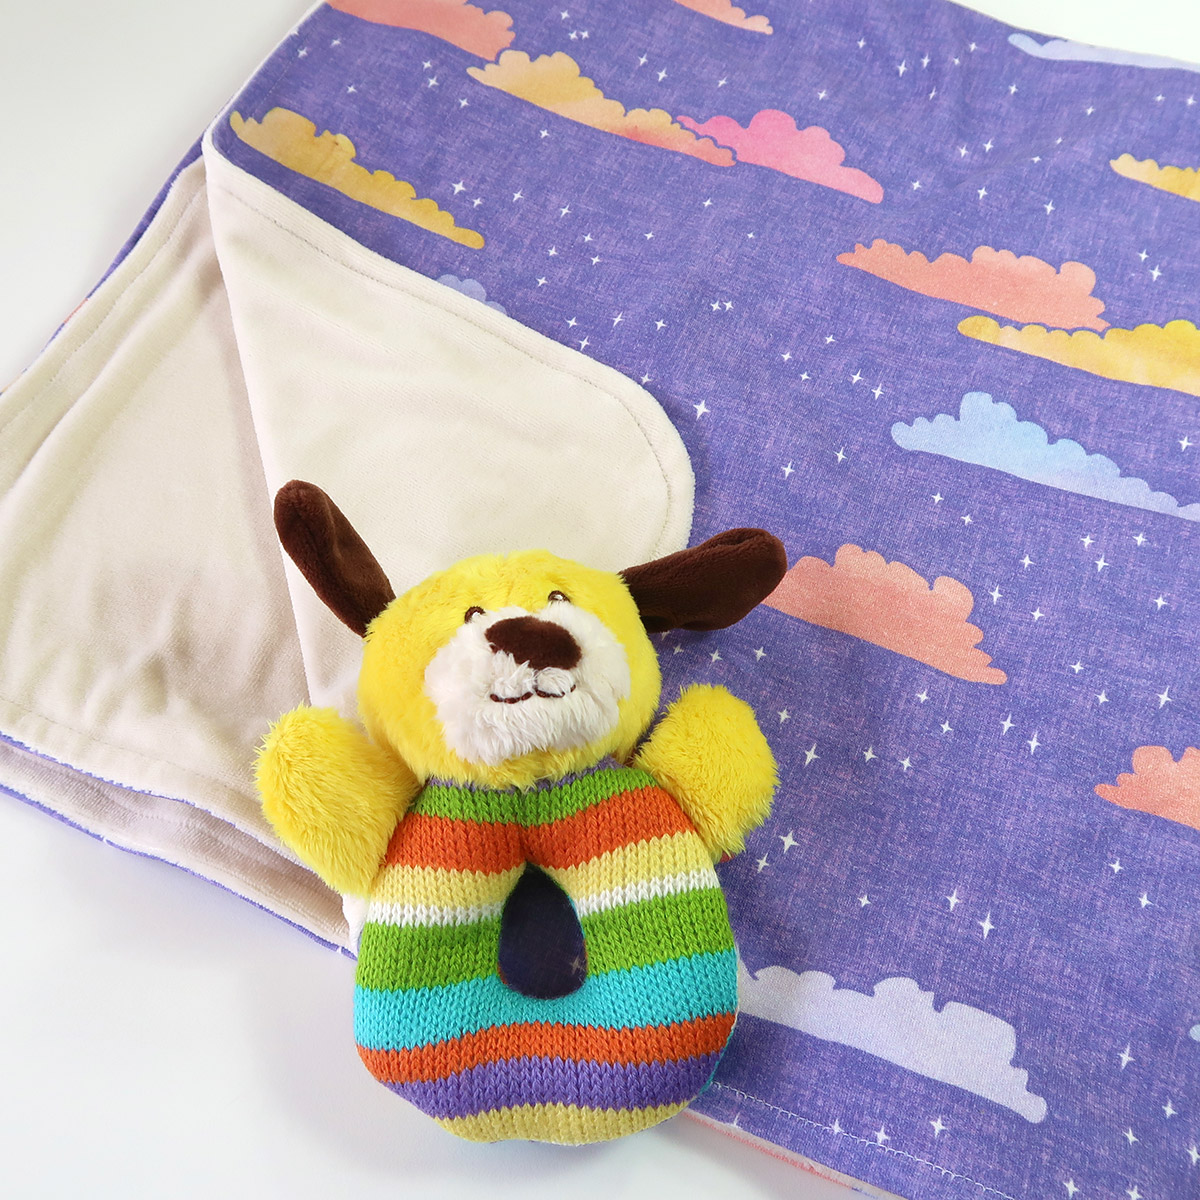 Quick to make baby blanket with cloud design